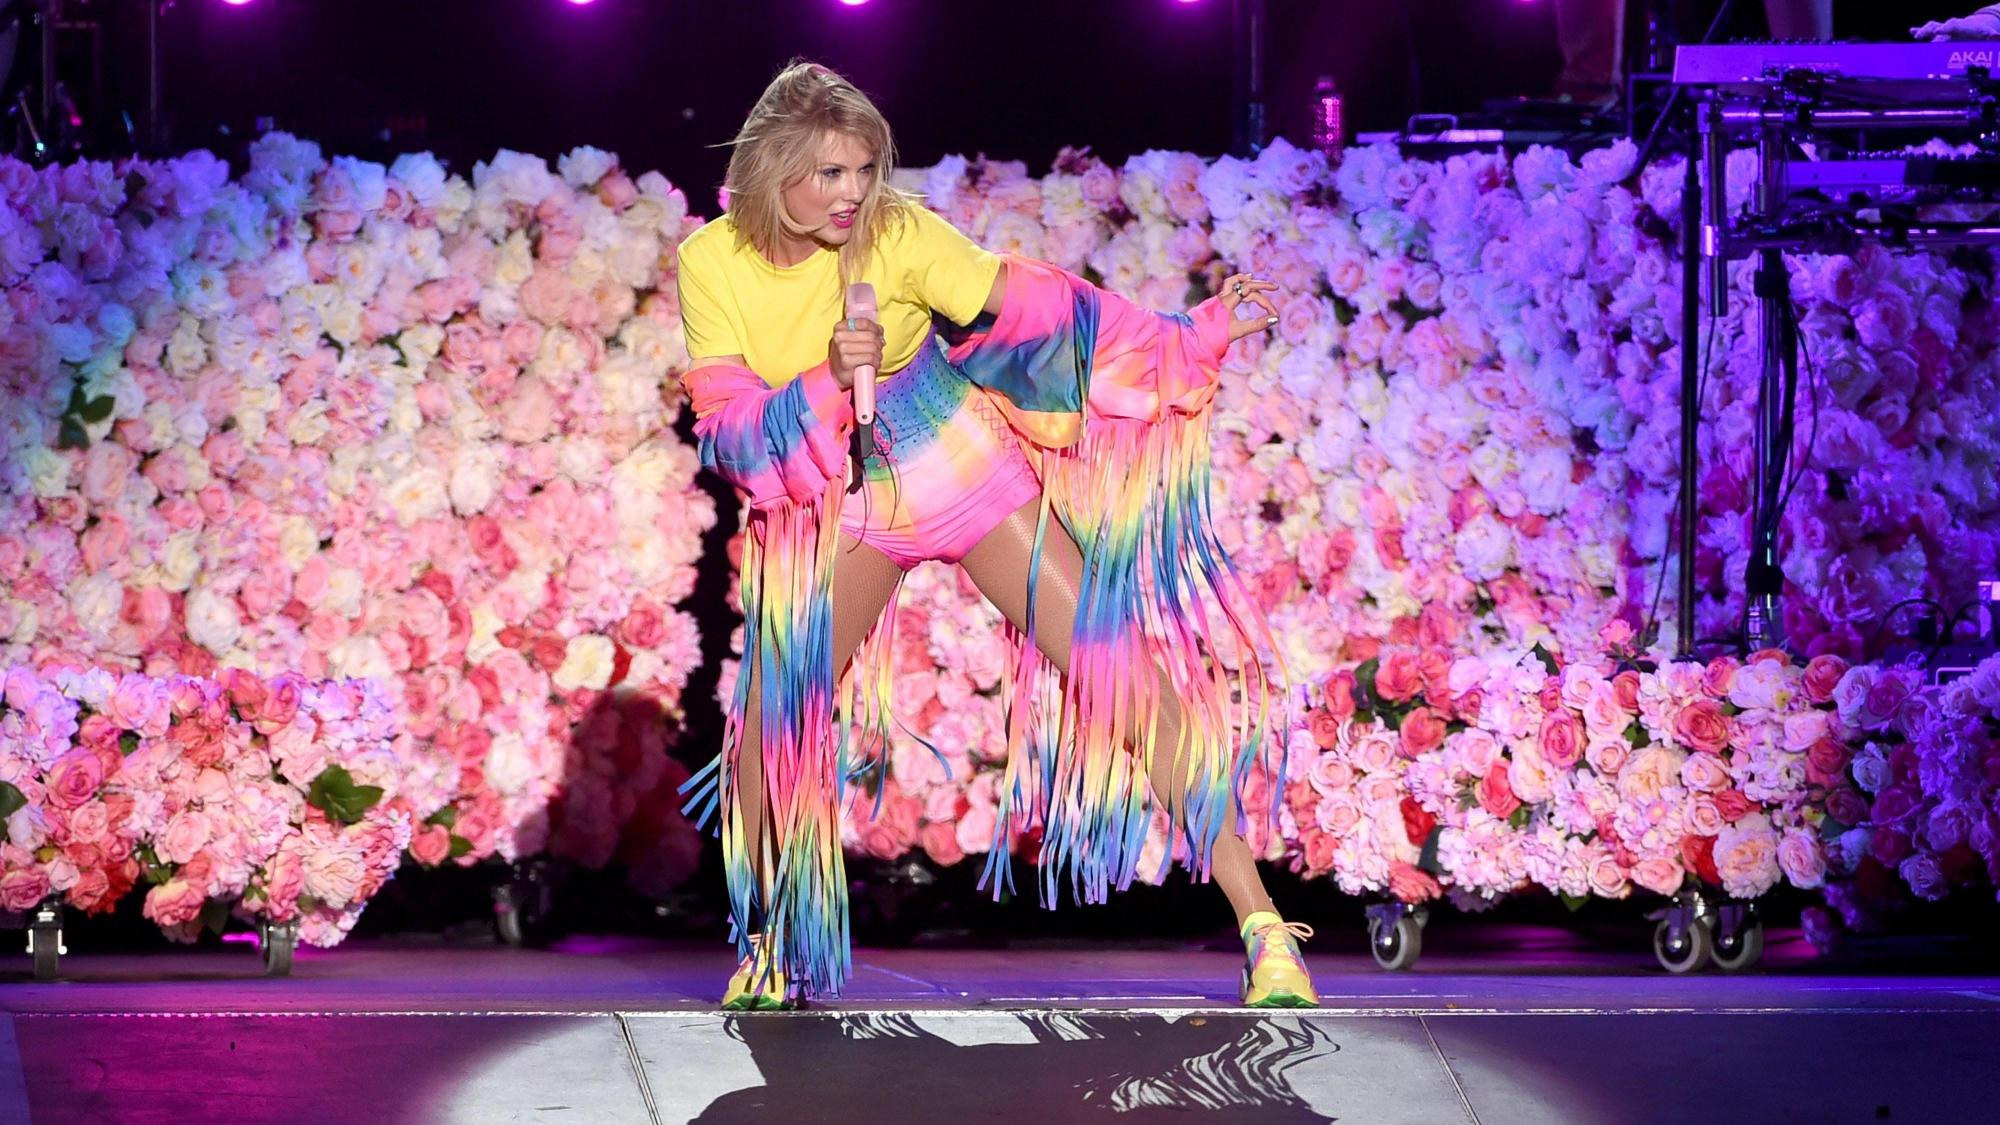 Post Surgery Taylor Swift Nearly Has Meltdown Over A Banana In Video Her Mom Recorded Wral Com